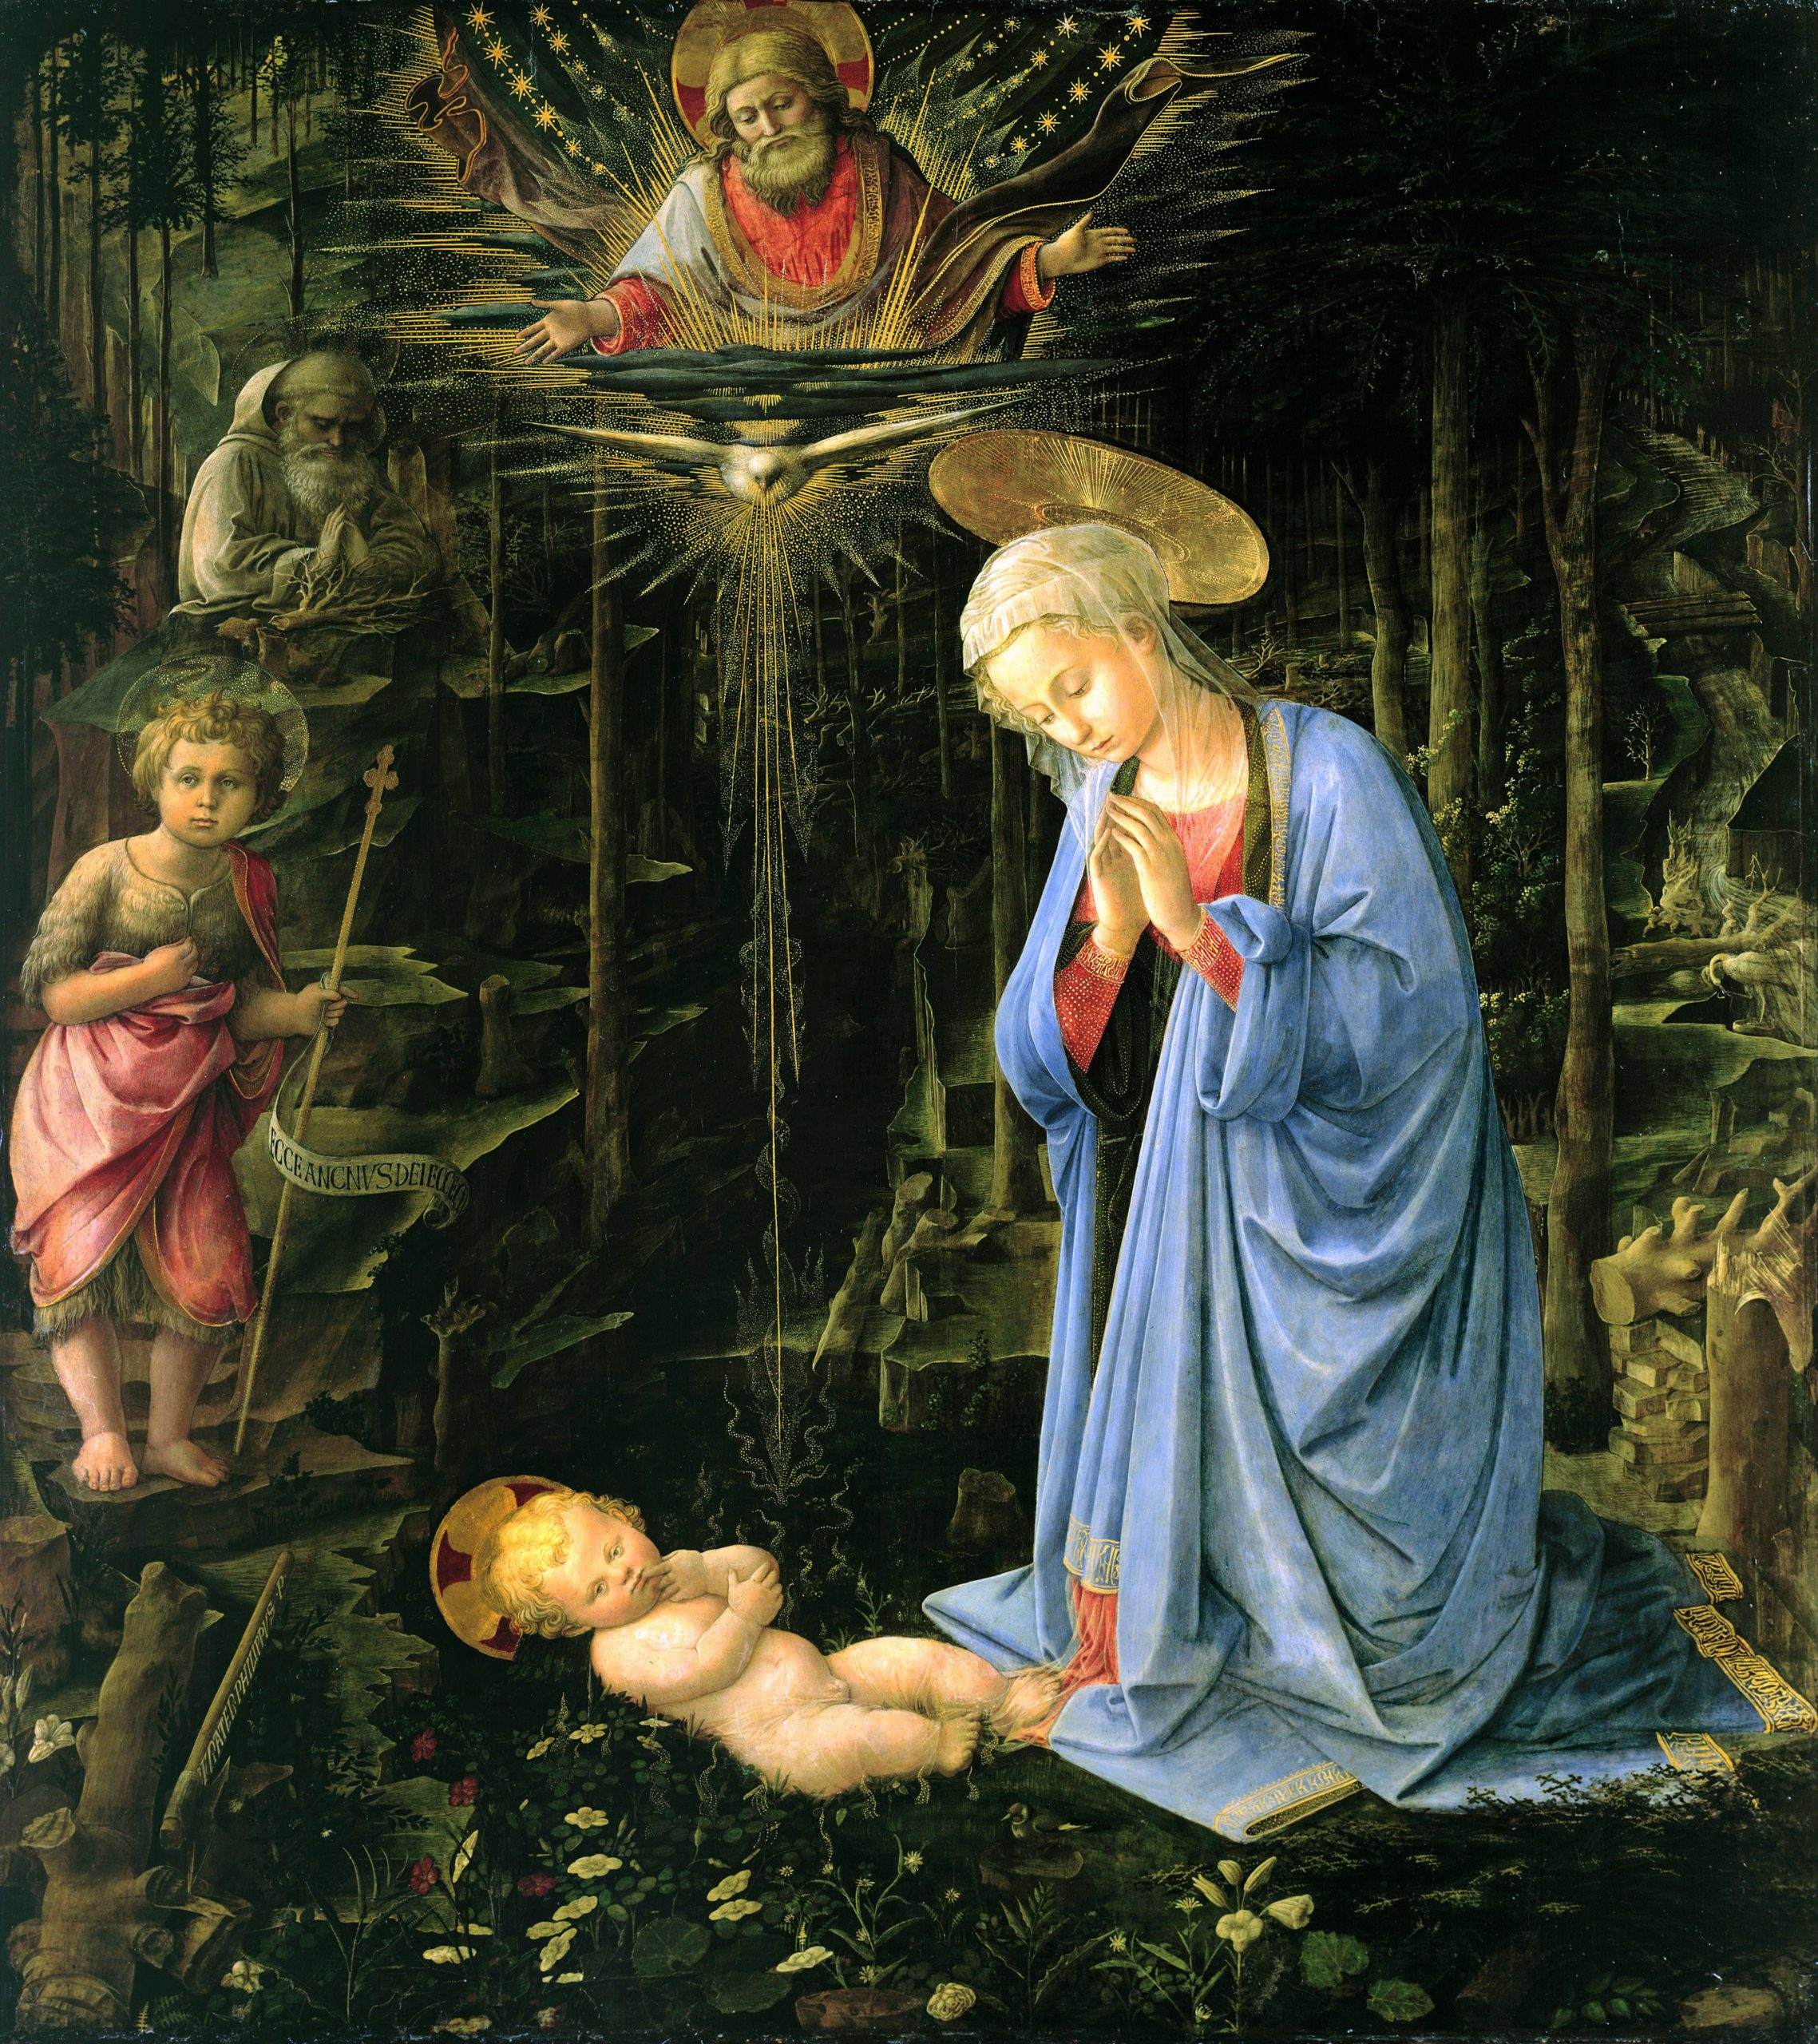 Painting of the Virgin Mary and newly born Christ Child, in a dark forest - by Filippo Lippi.